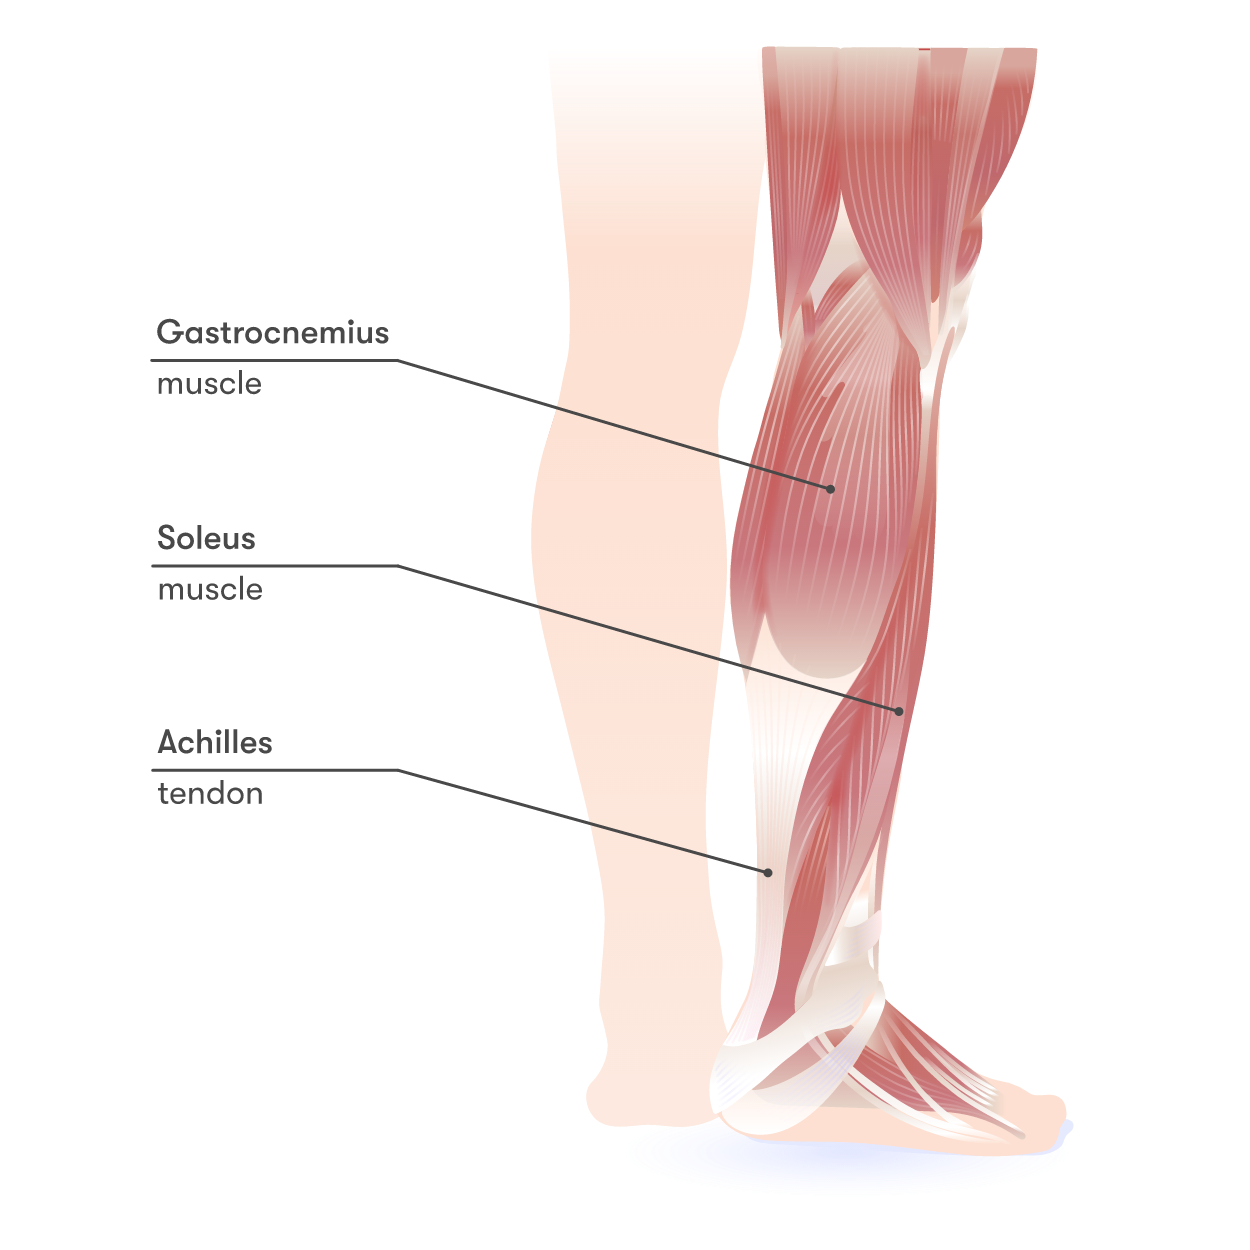 Achilles tendon and the leg muscles